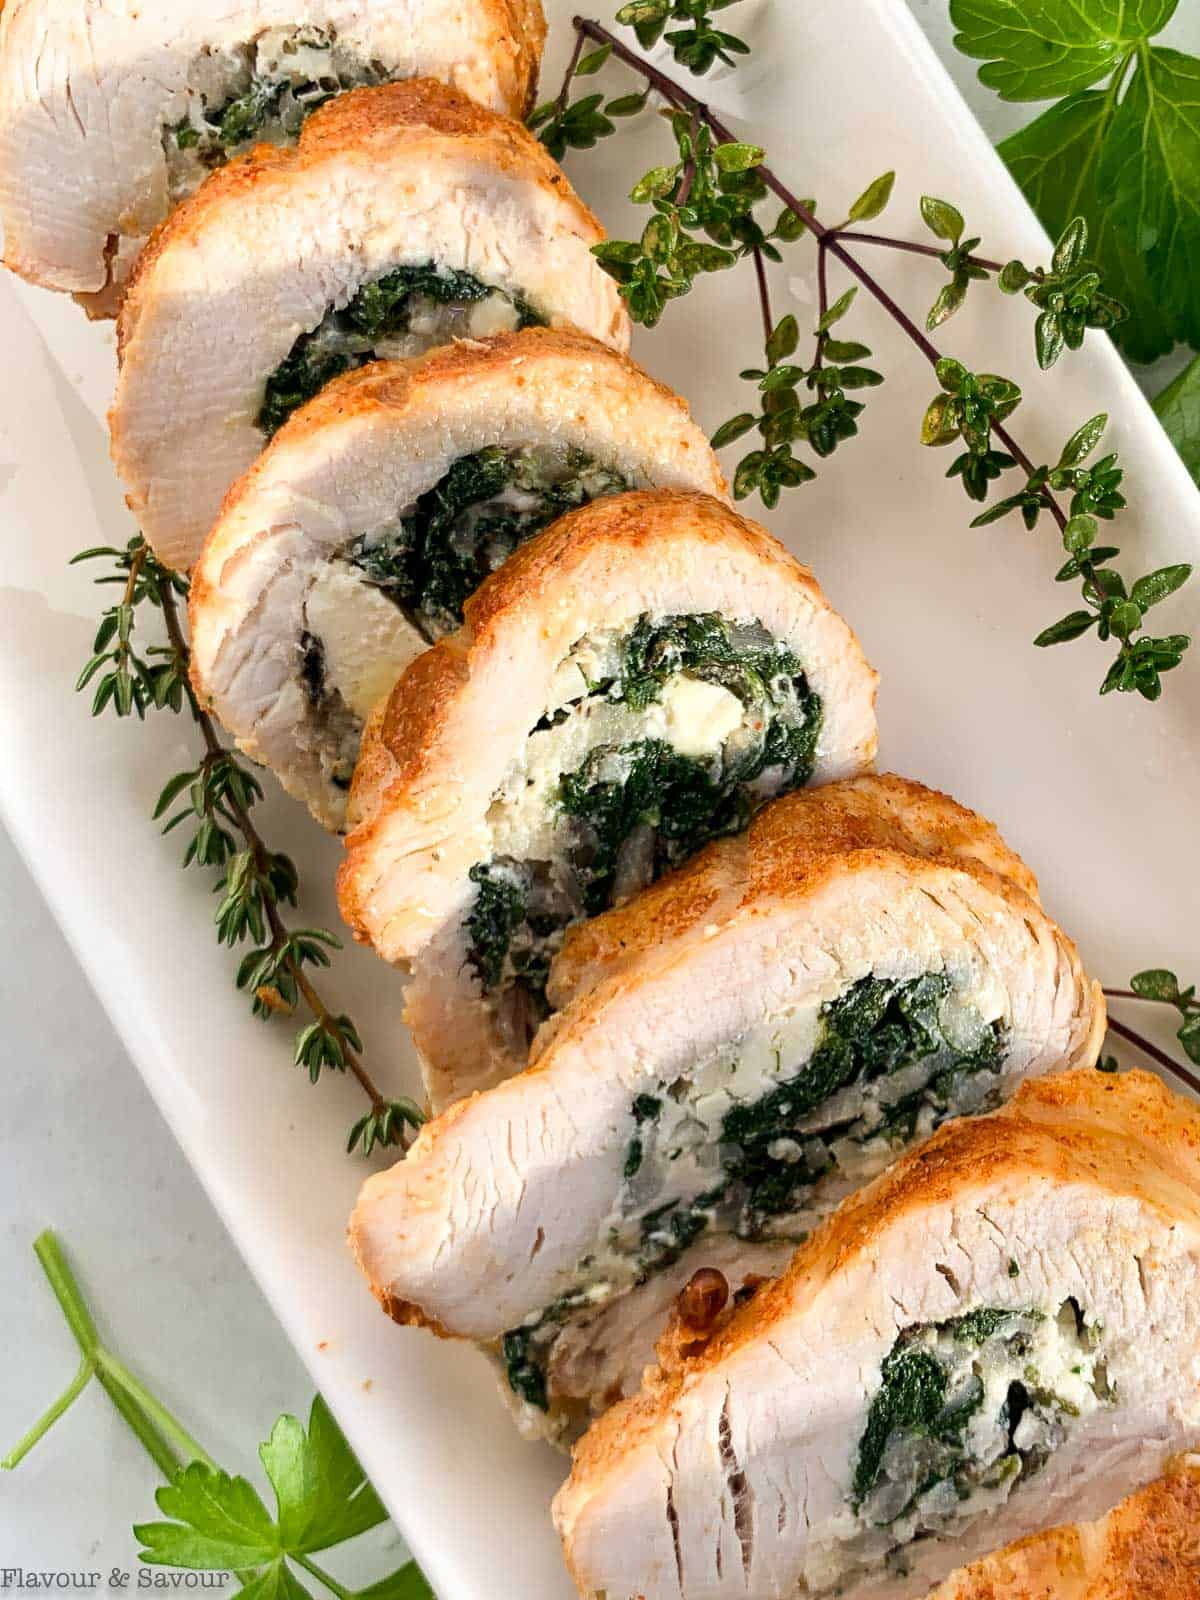 Close up view of slices of stuffed rolled turkey breast